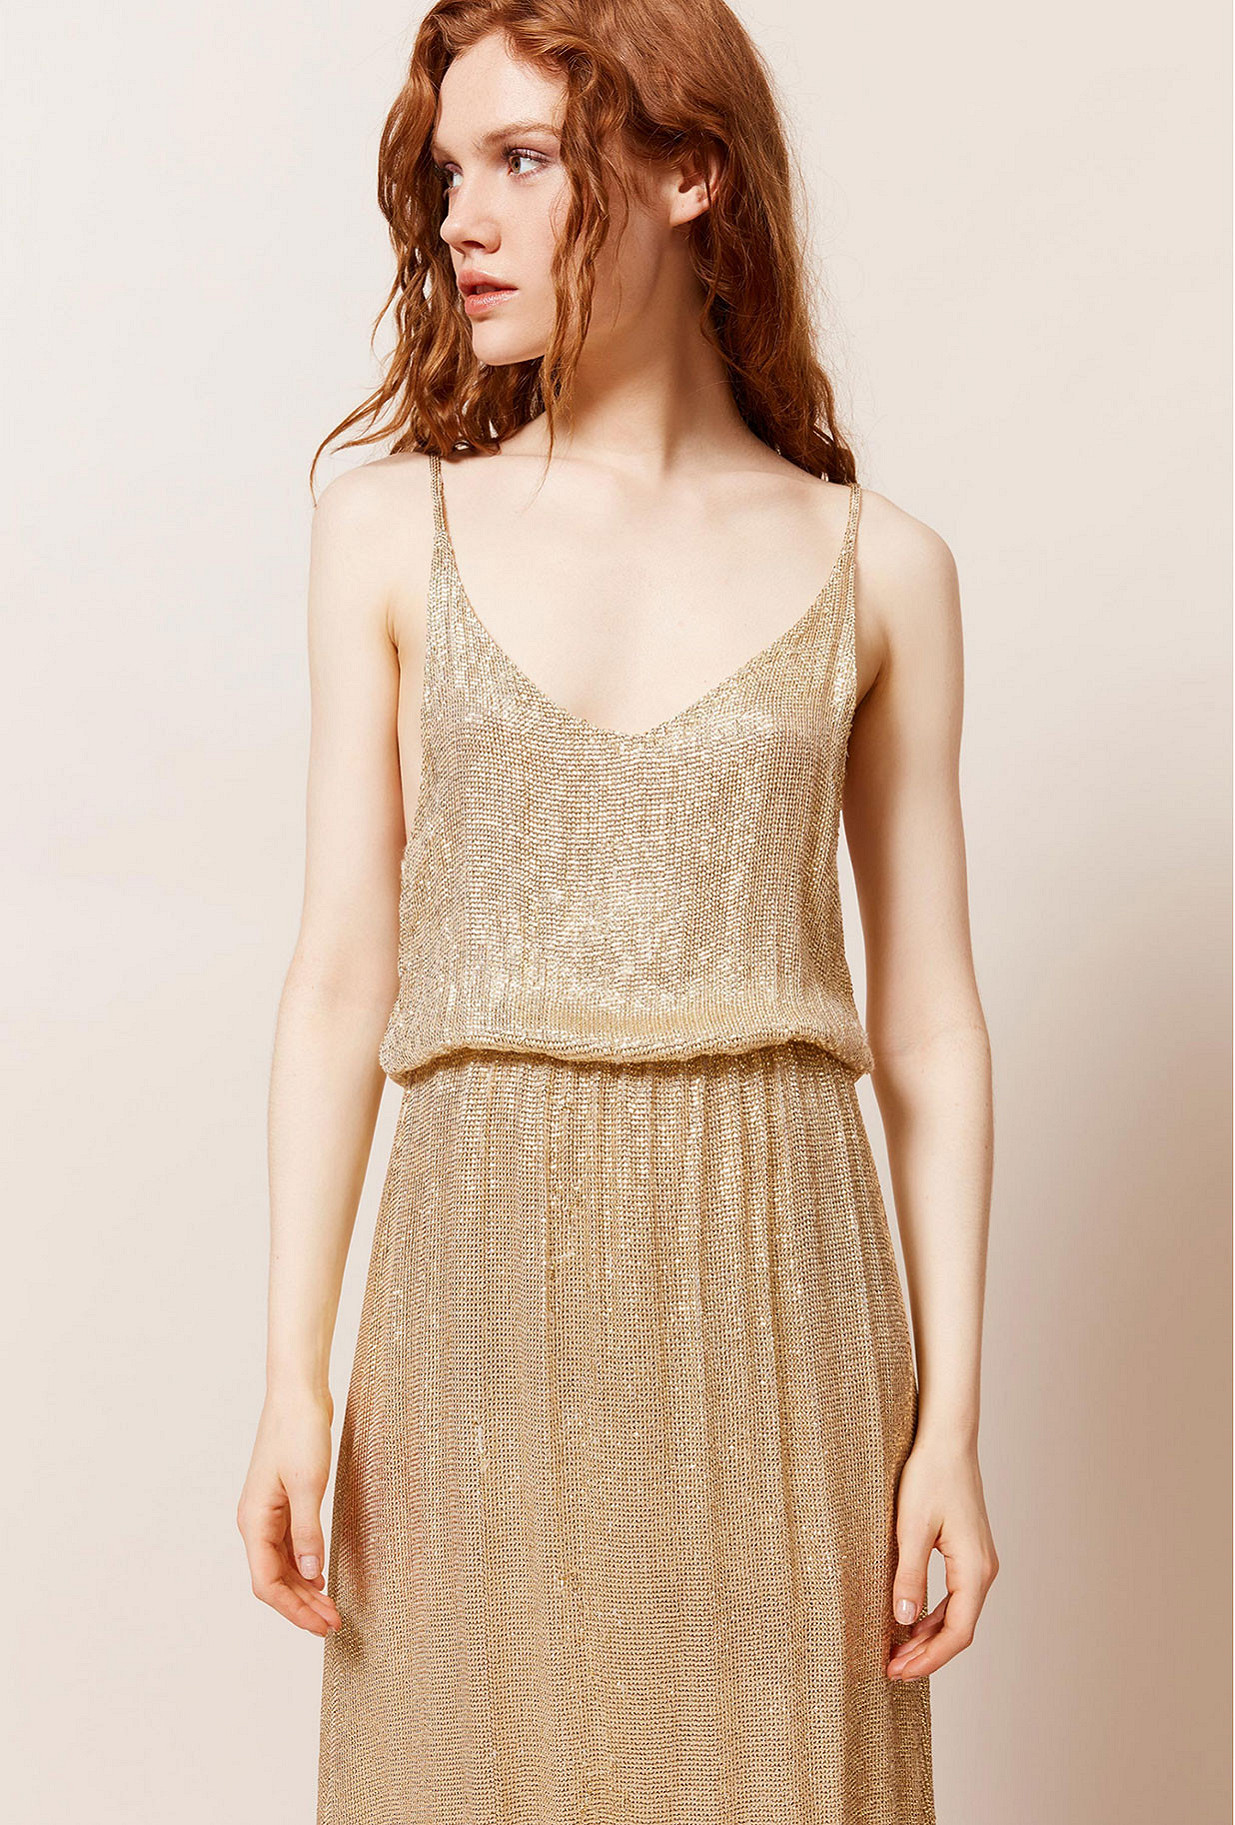 Gold Dress Philo Mes Demoiselles Paris